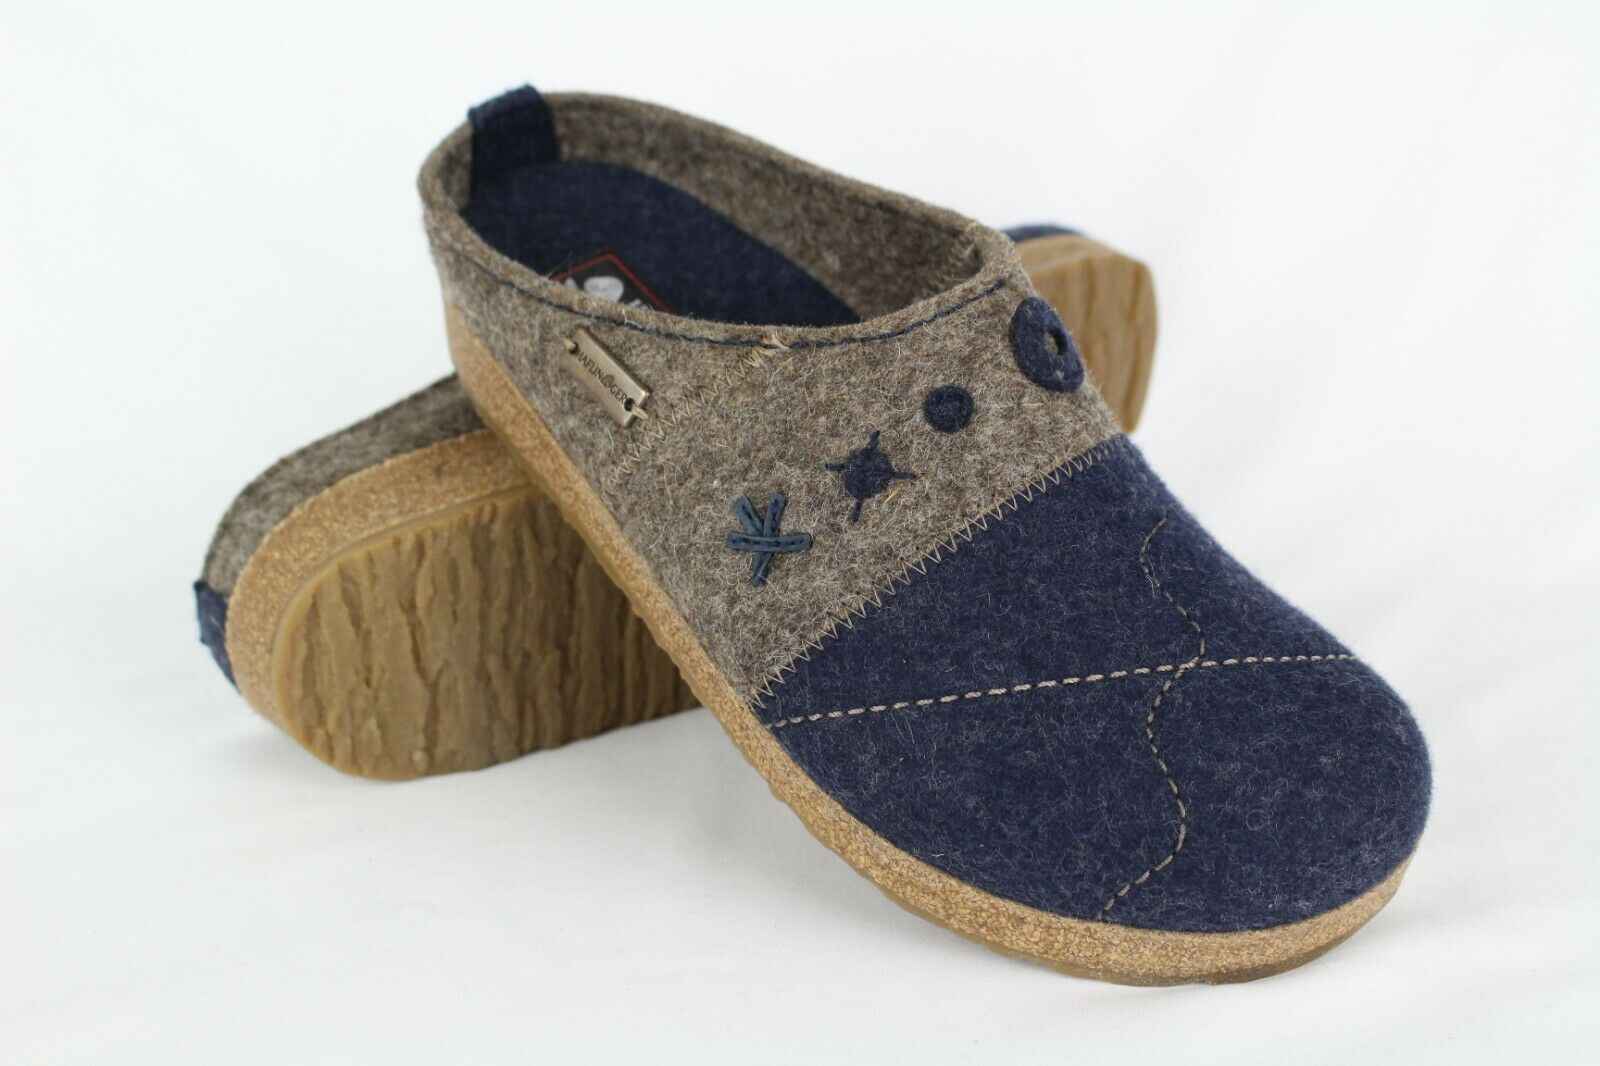 New Haflinger Women's GZ Tristan bluee-Eart Mule Size 40 9 or 41 10